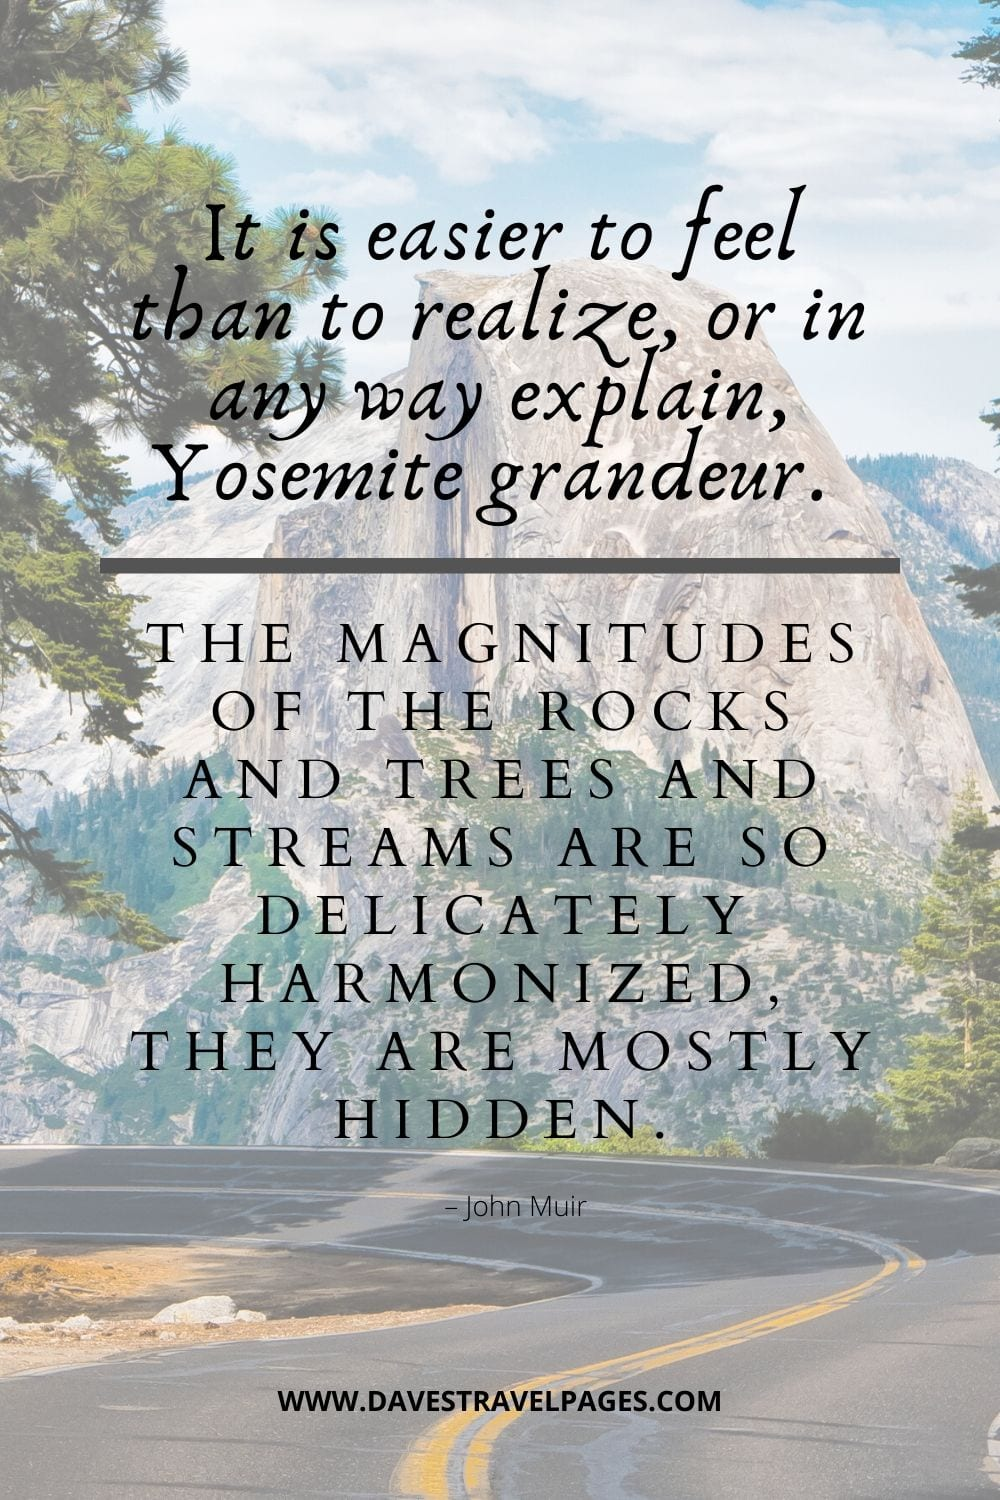 """JOhn Muir Sayings - """"It is easier to feel than to realize, or in any way explain, Yosemite grandeur. The magnitudes of the rocks and trees and streams are so delicately harmonized, they are mostly hidden."""""""